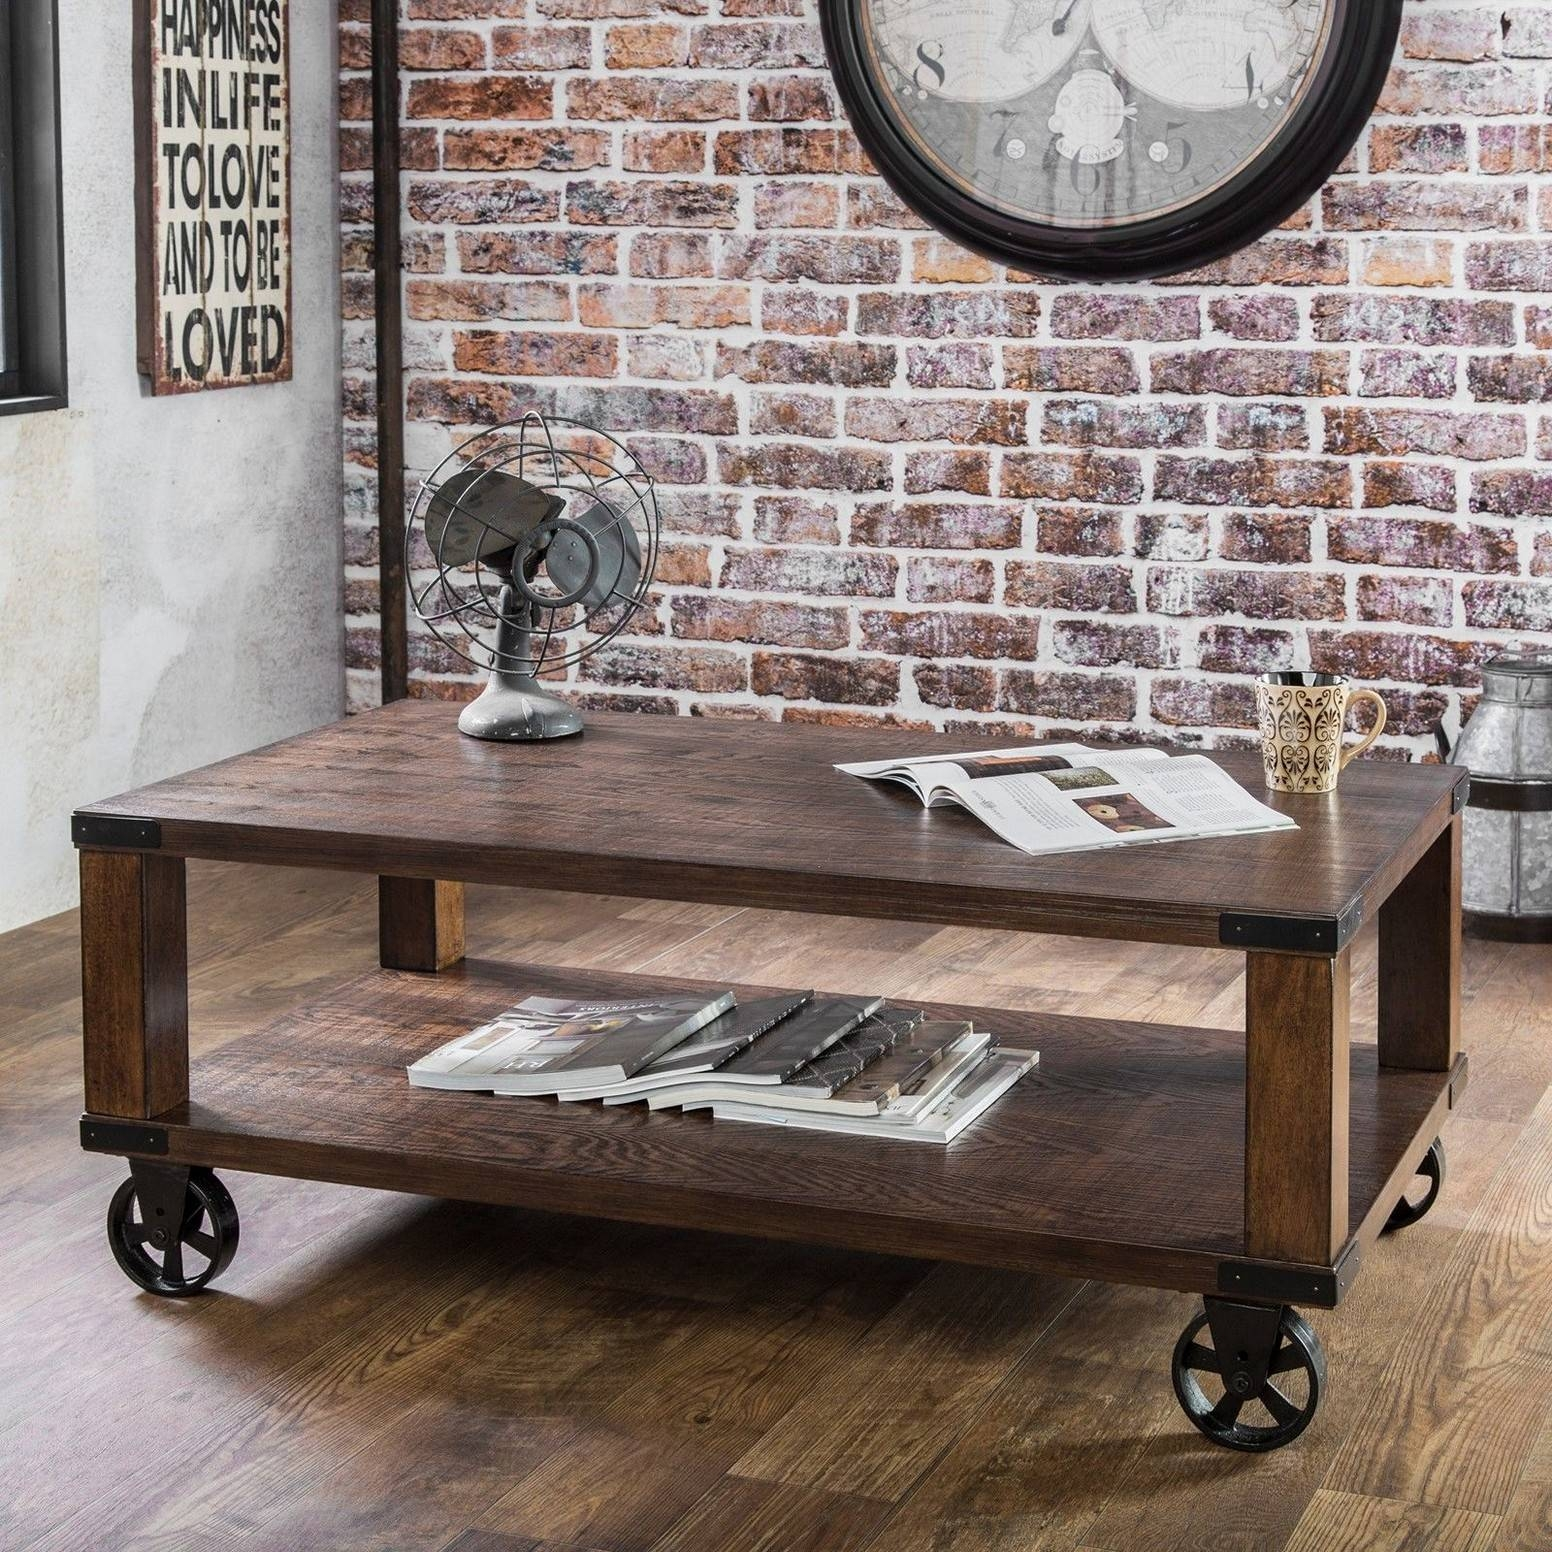 Coffee Table On Wheels With Storage | Coffee Tables Decoration regarding Coffee Tables With Wheels (Image 7 of 30)